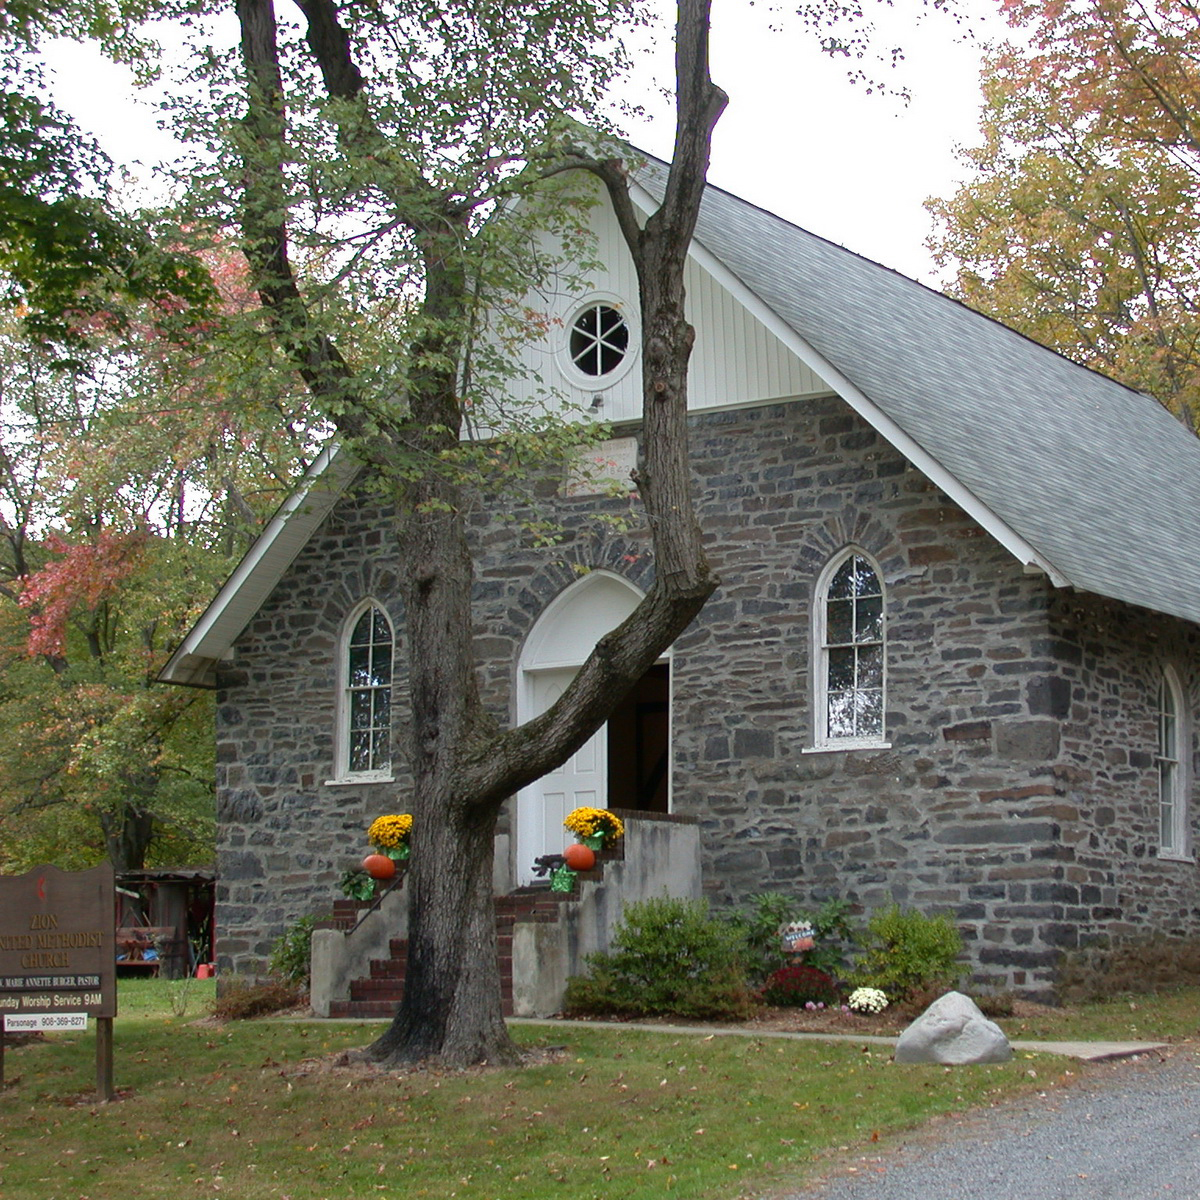 Mt. Zion United Methodist Church in Hillsborough, NJ